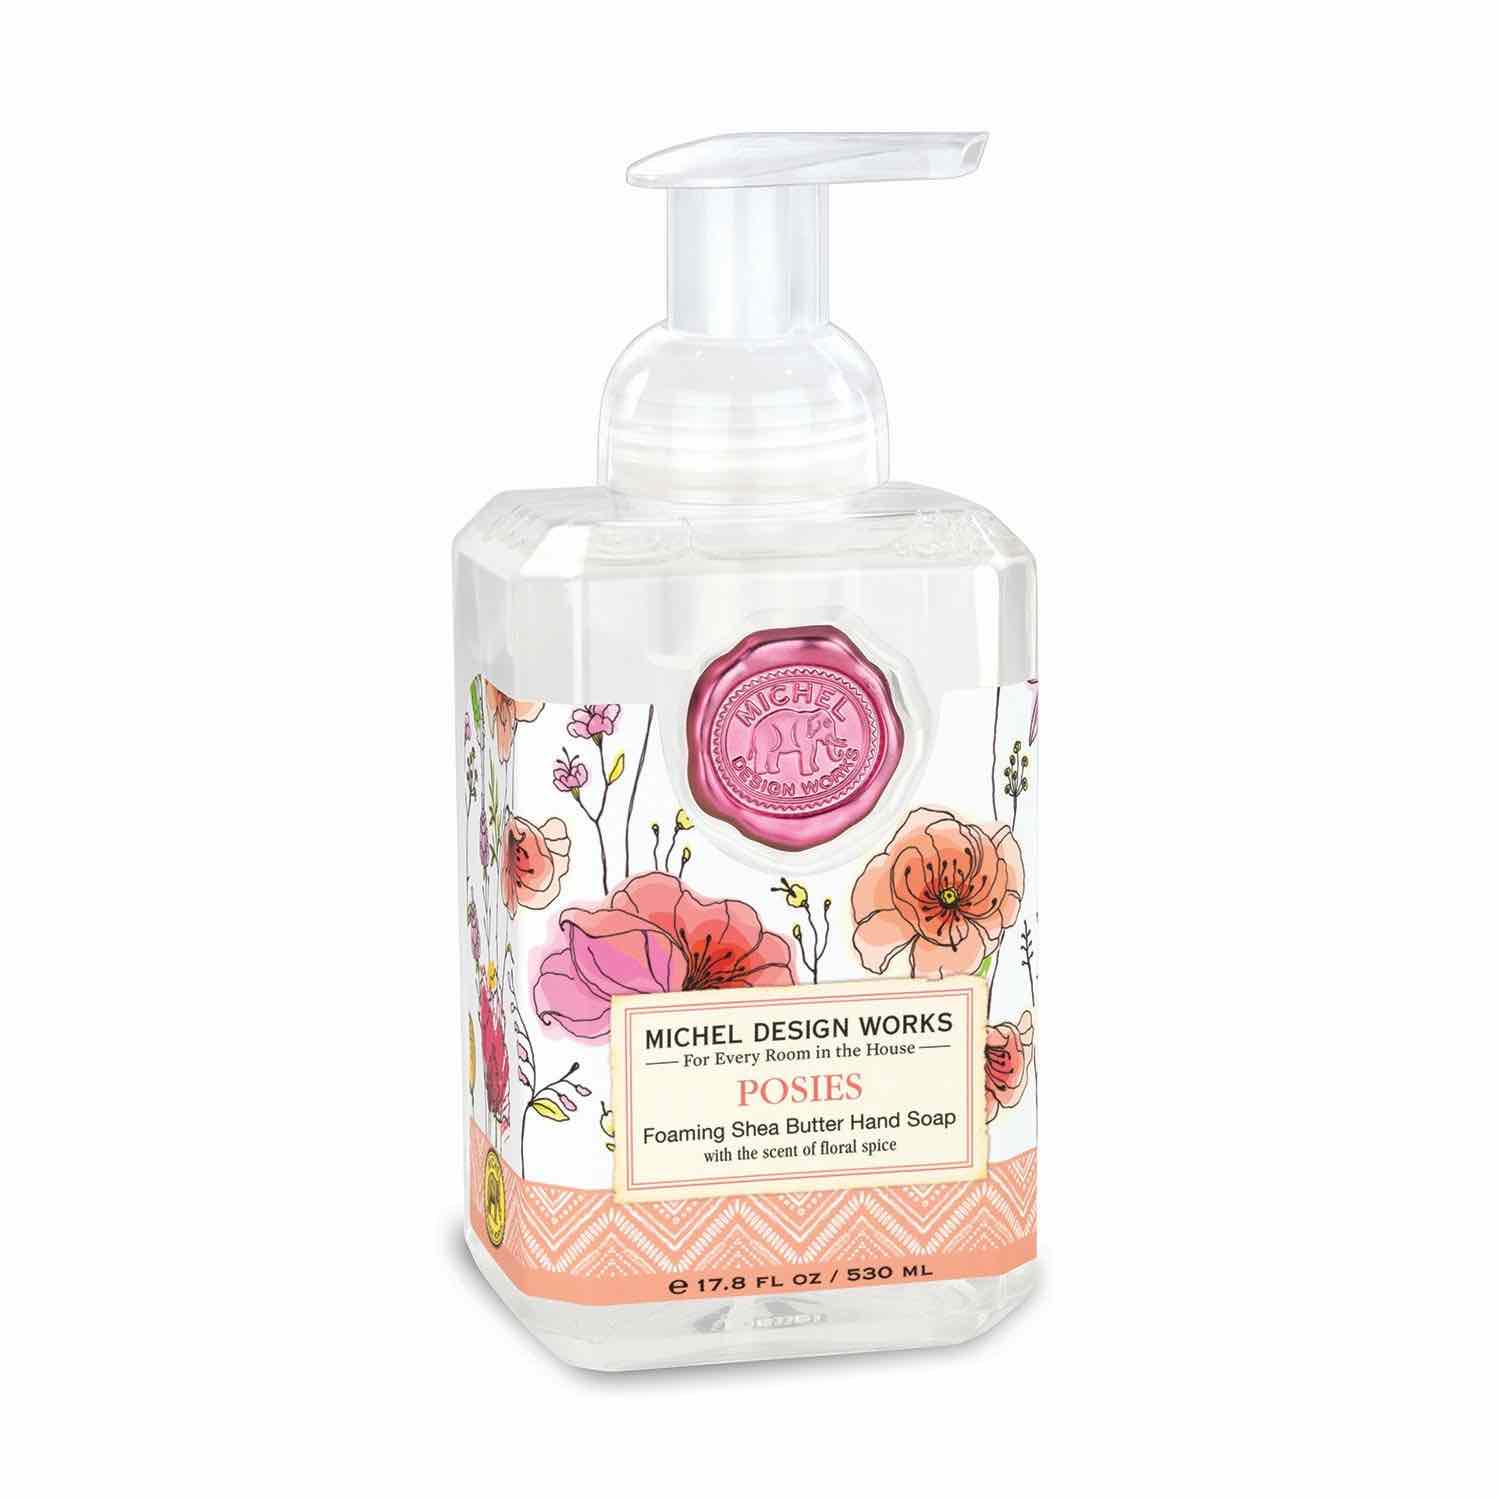 Michel Design Works Foaming Soap | Posies